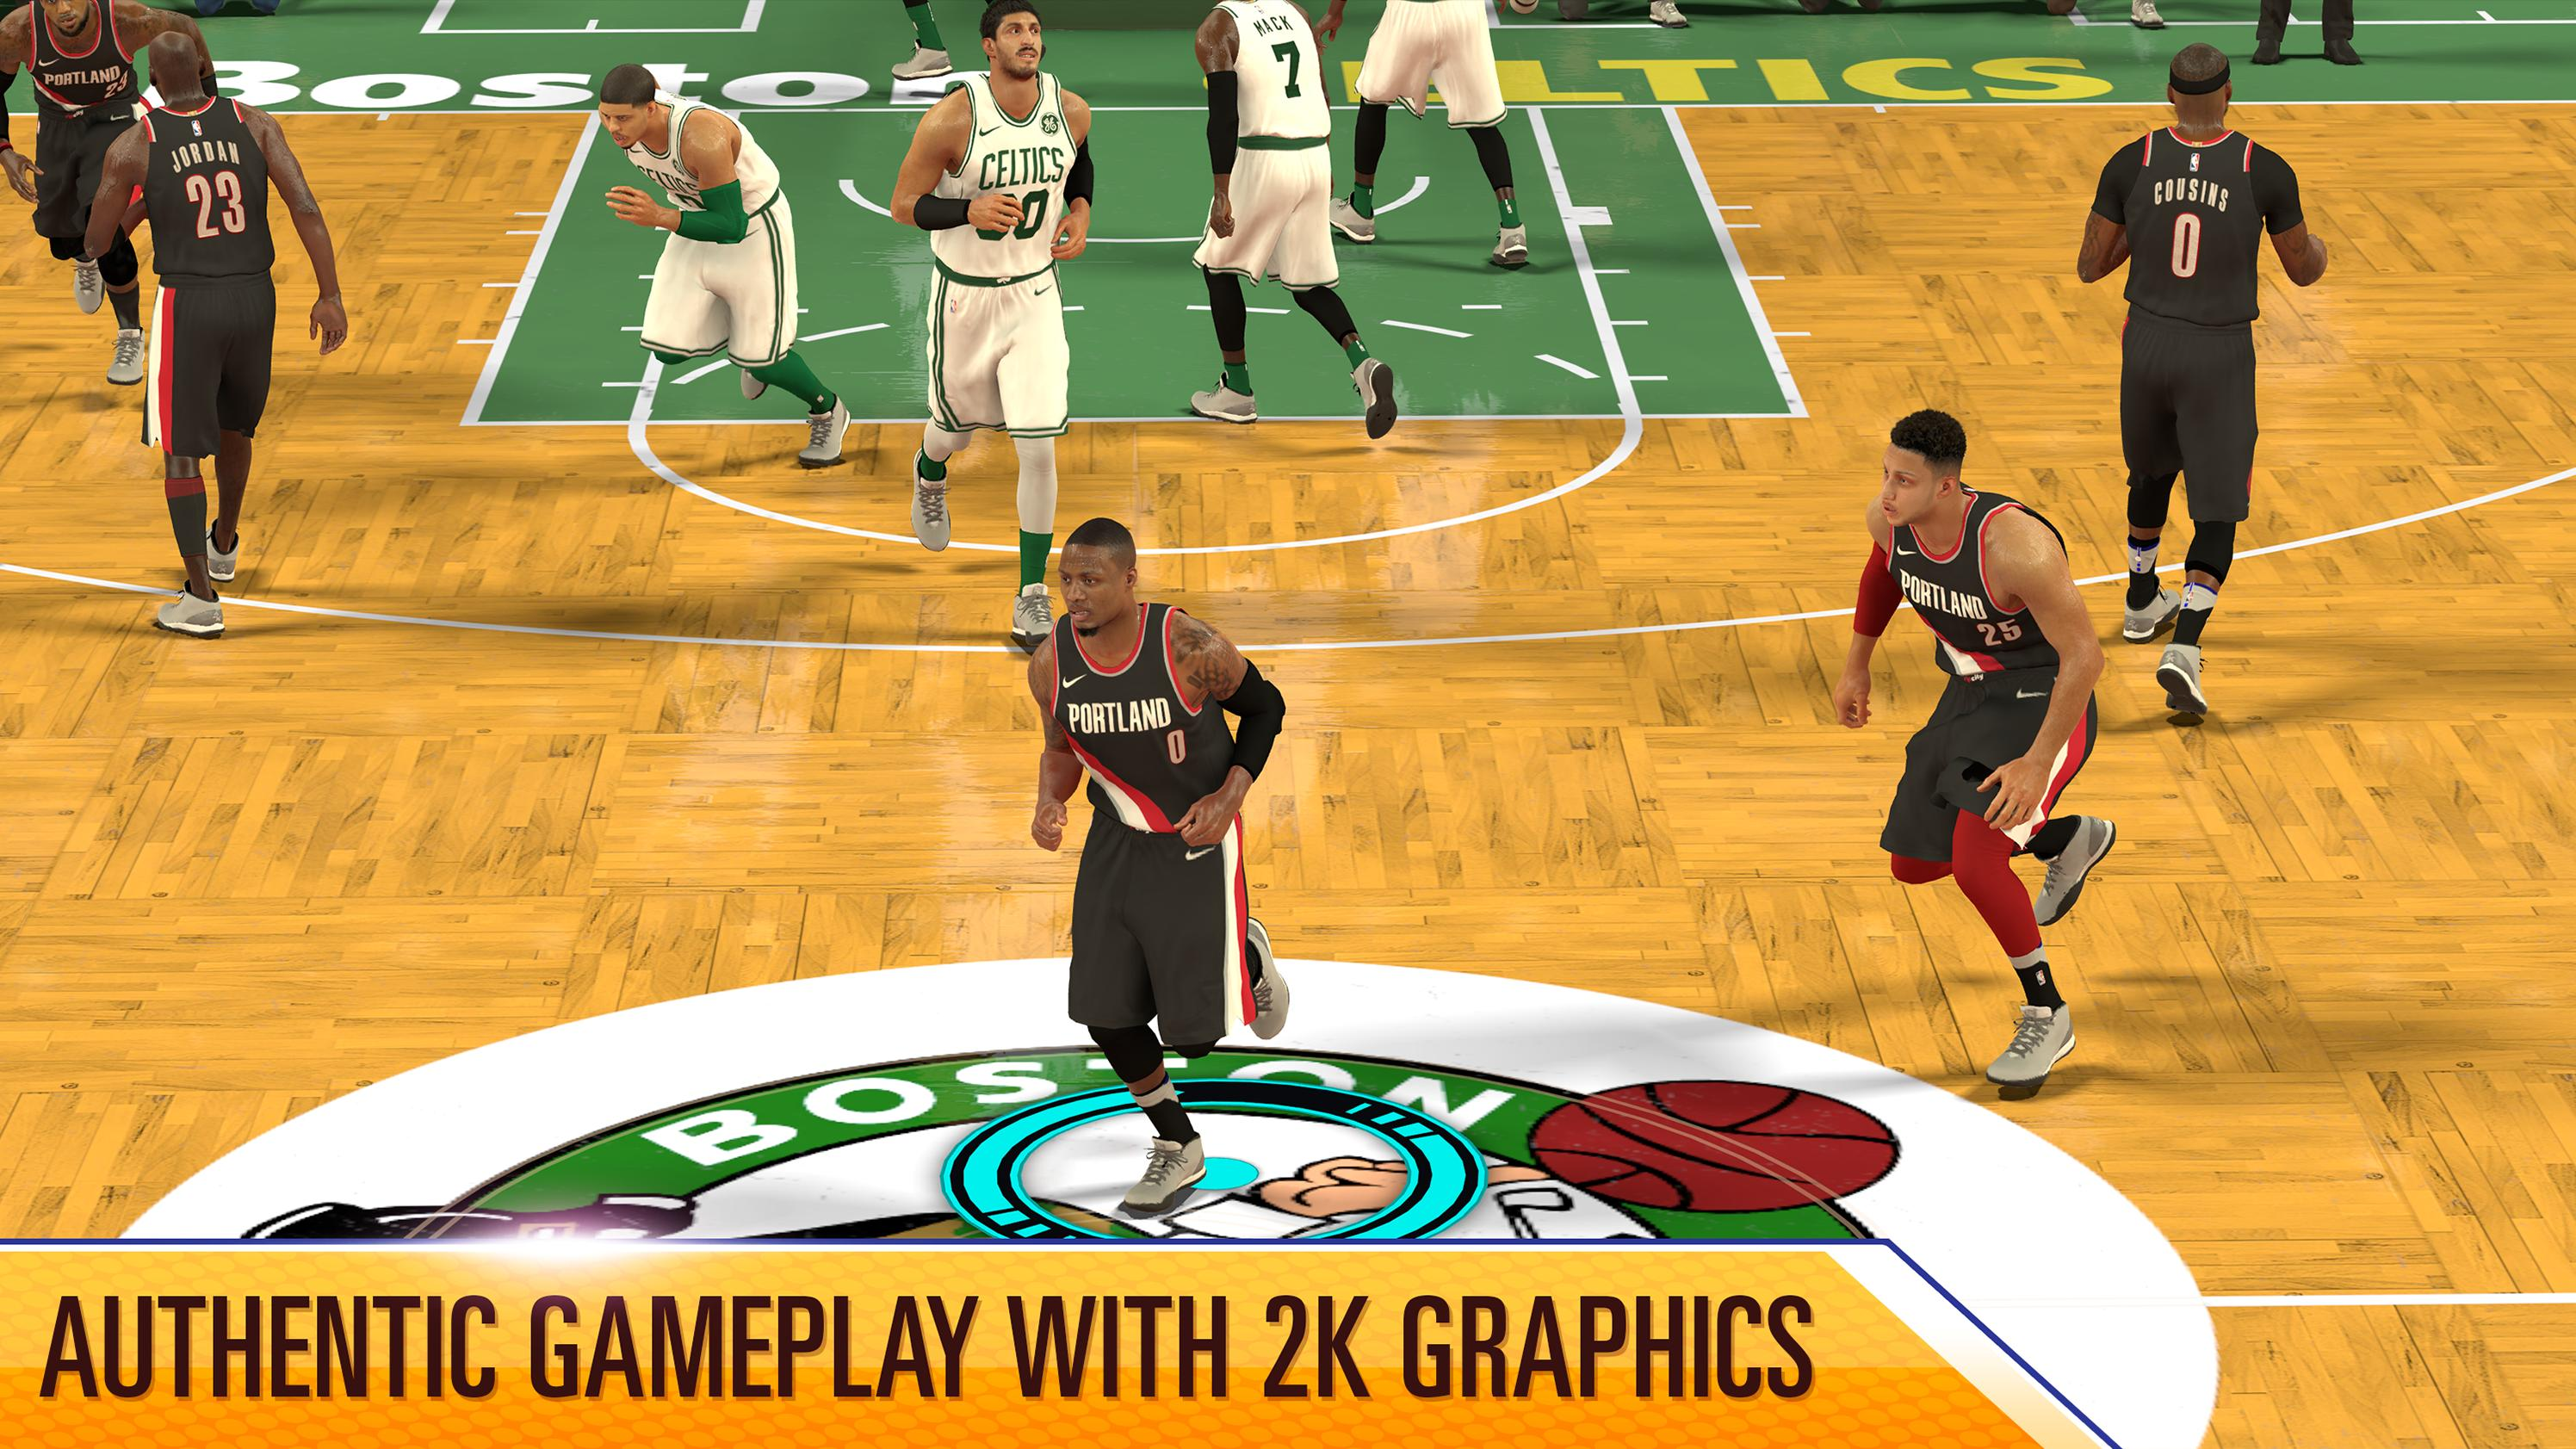 nba 2k14 free download for android offline